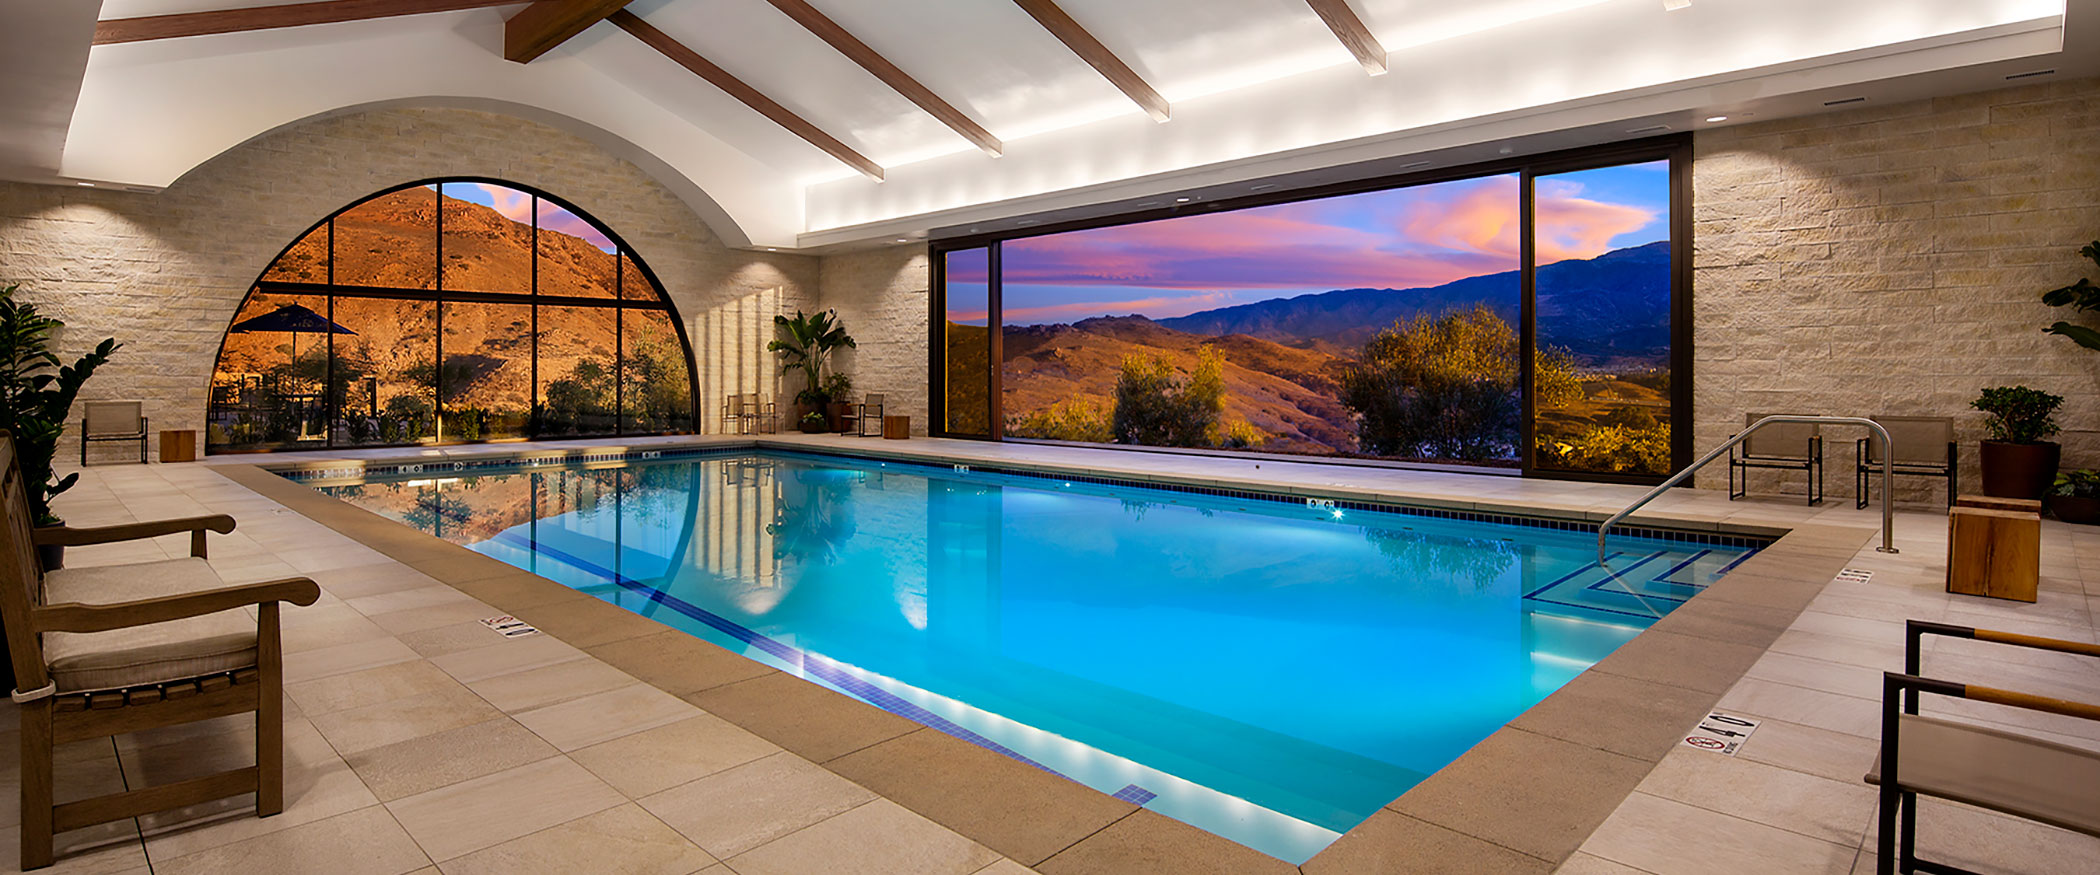 Indoor Pool at the Terrace Club